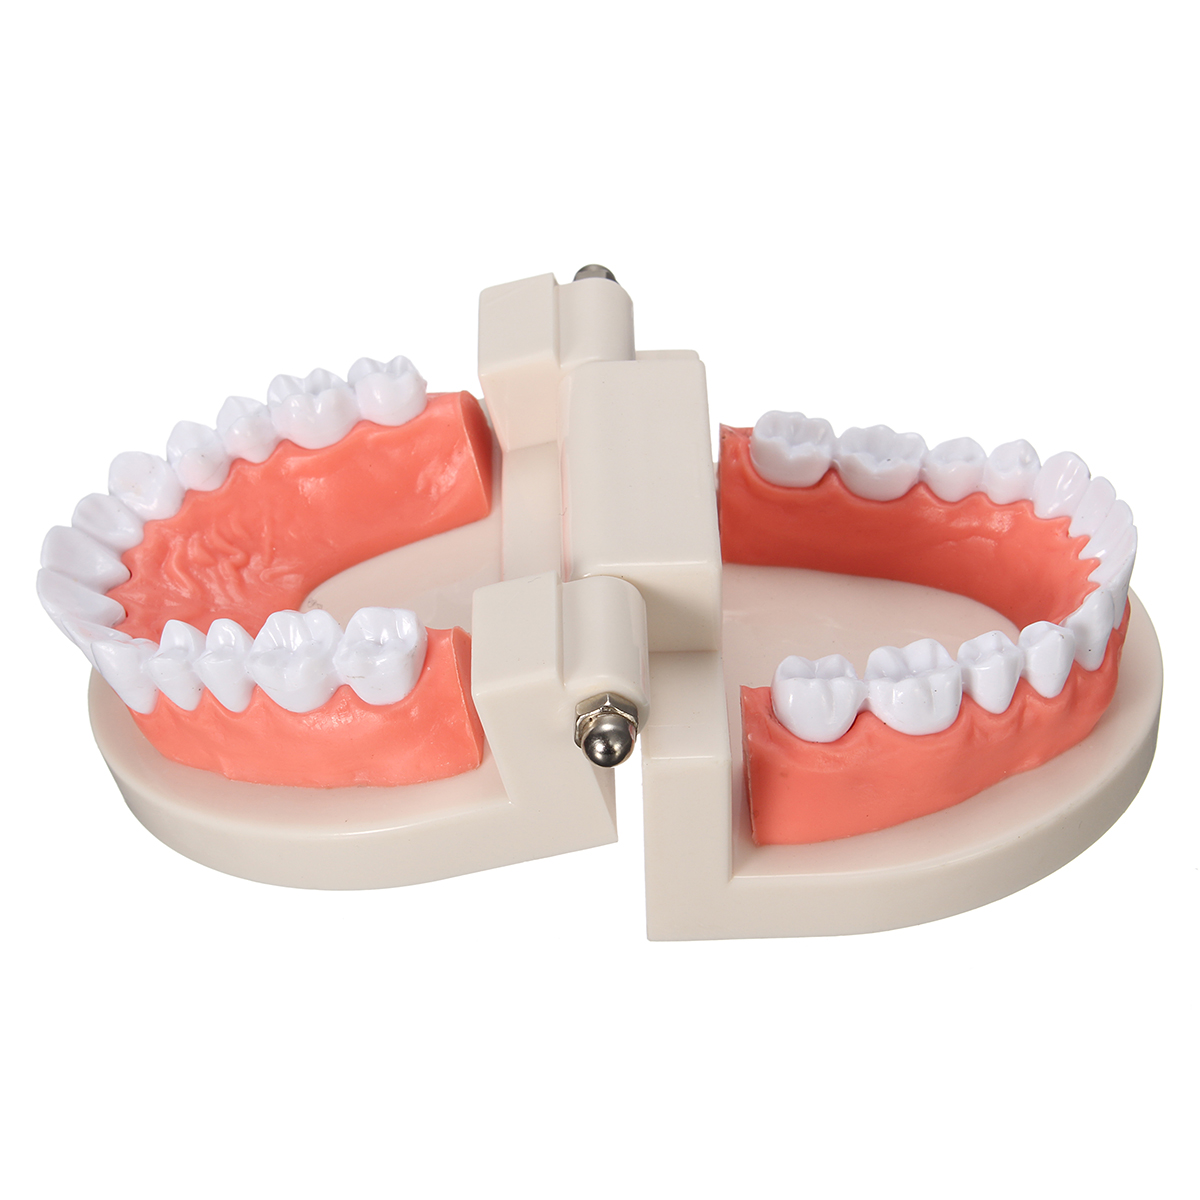 ABS Tooth Model Tooth Veneered Practice Dental Teaching Learning